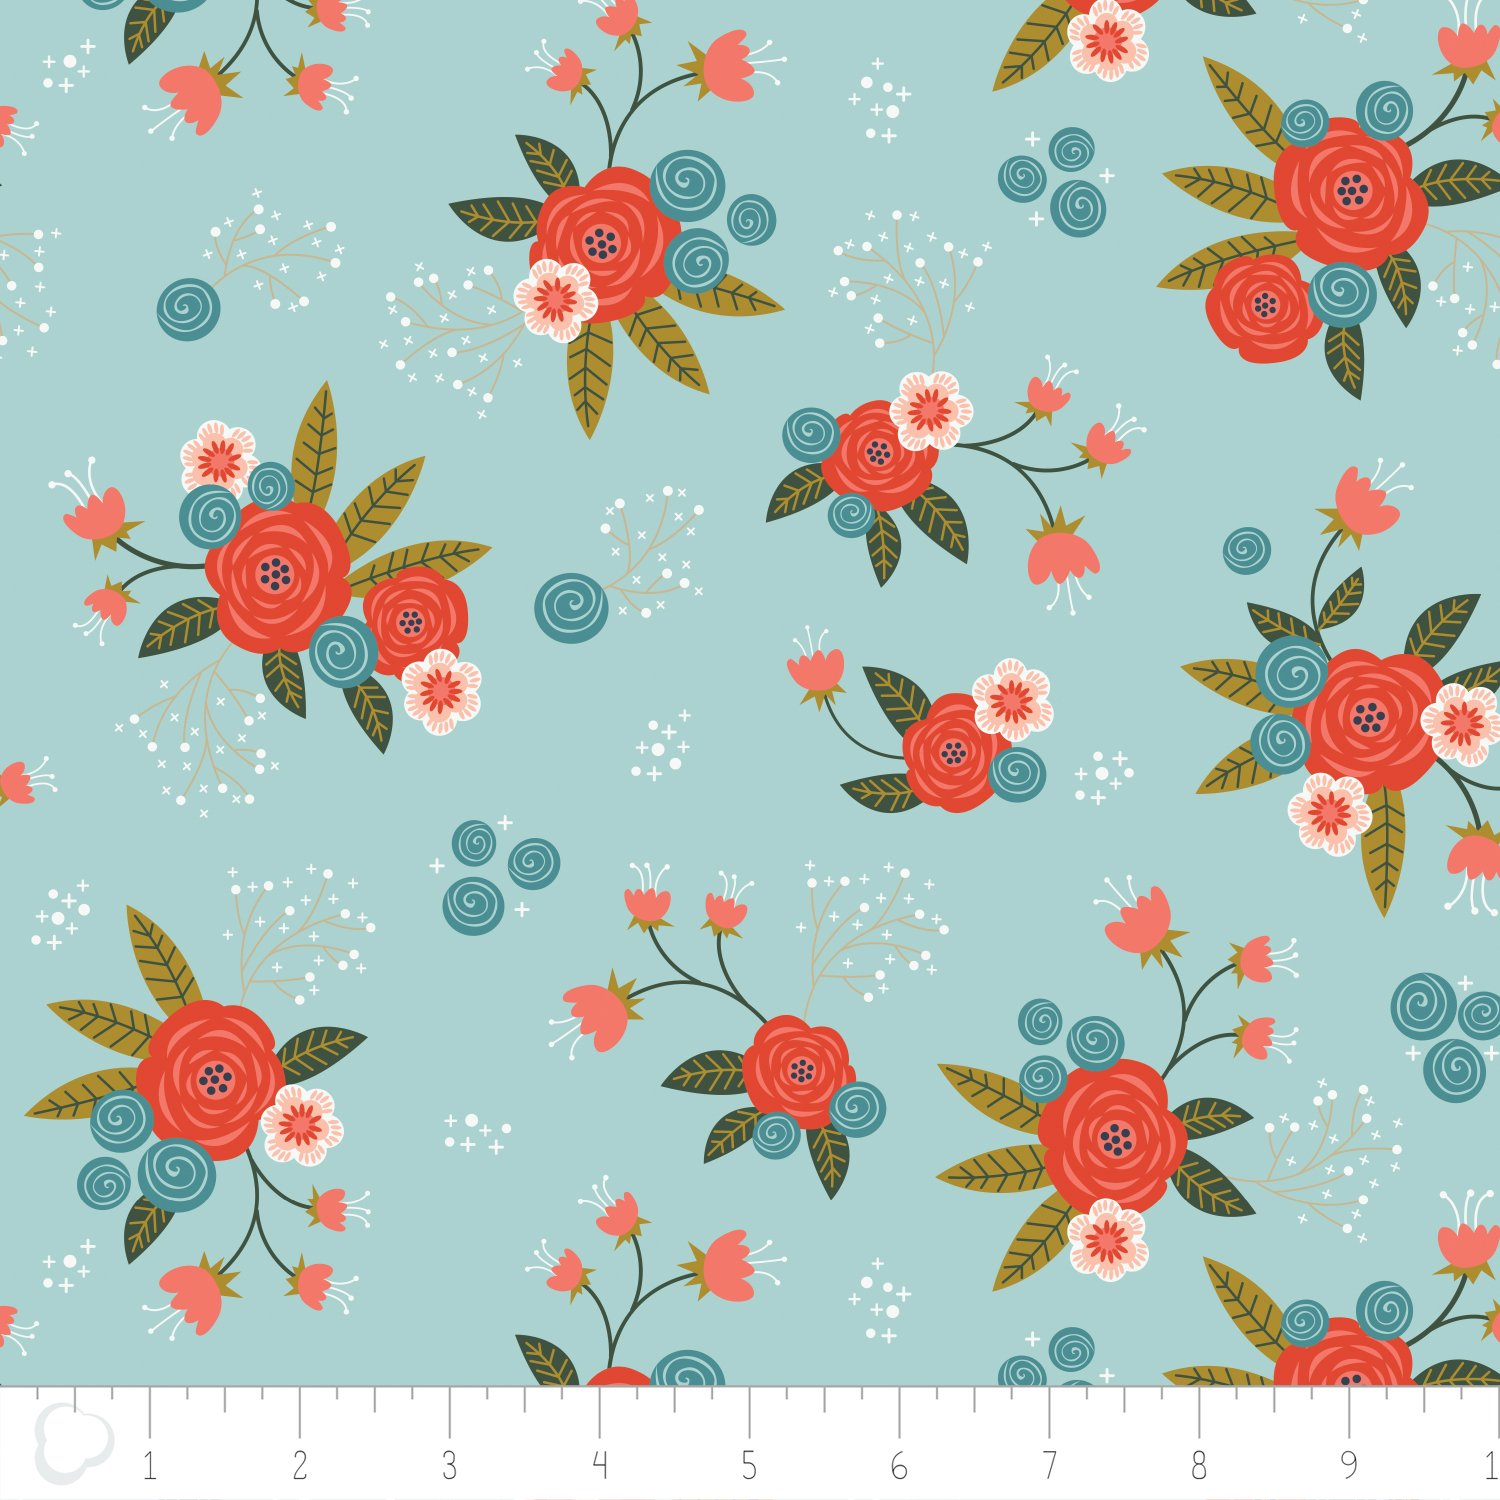 Happy Thoughts by Alissa Courter for Camelot Fabrics -  Floral in Aqua #2240801.02